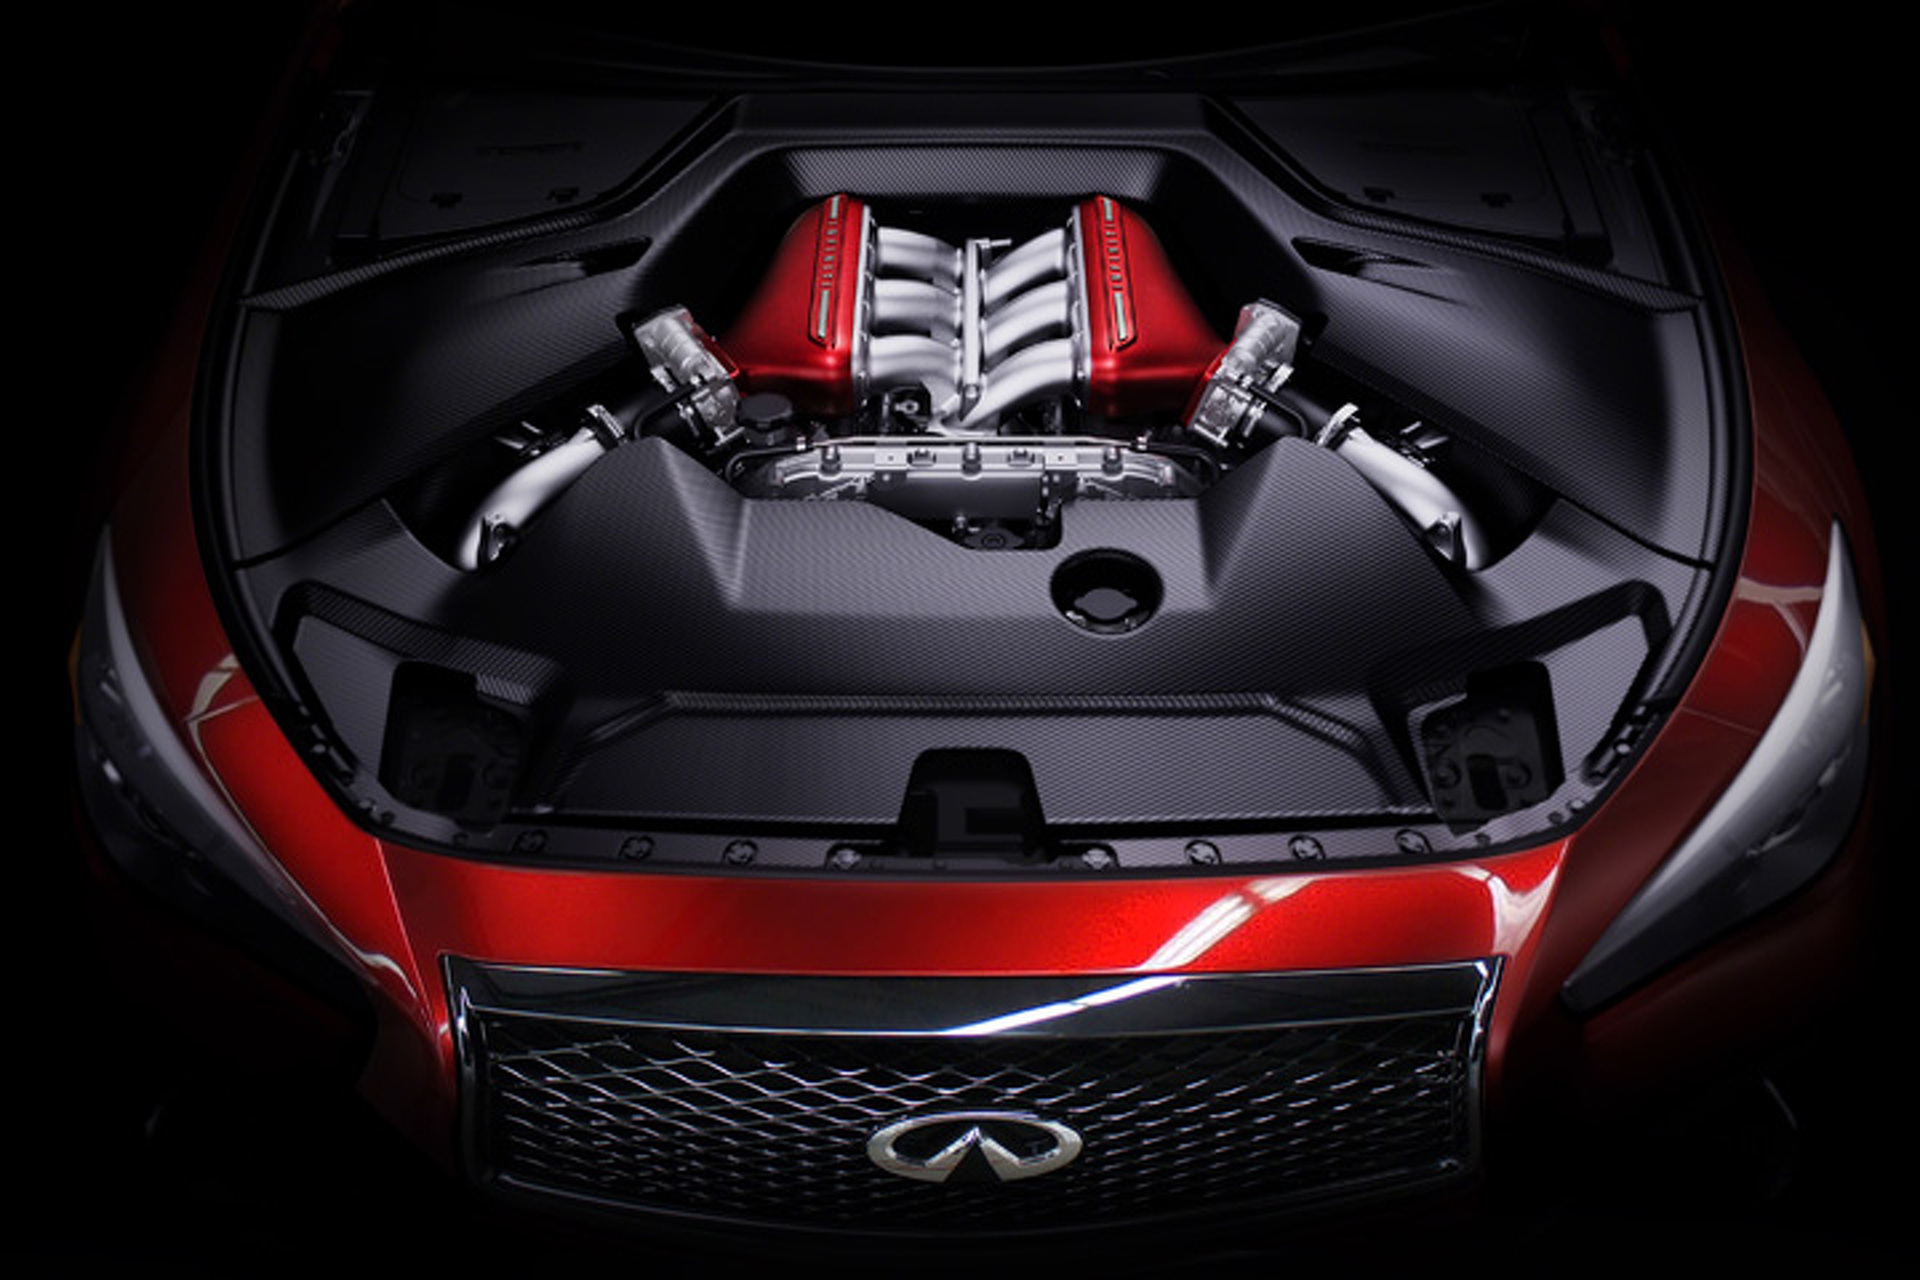 The Q50 Eau Rouge is Happening for Real